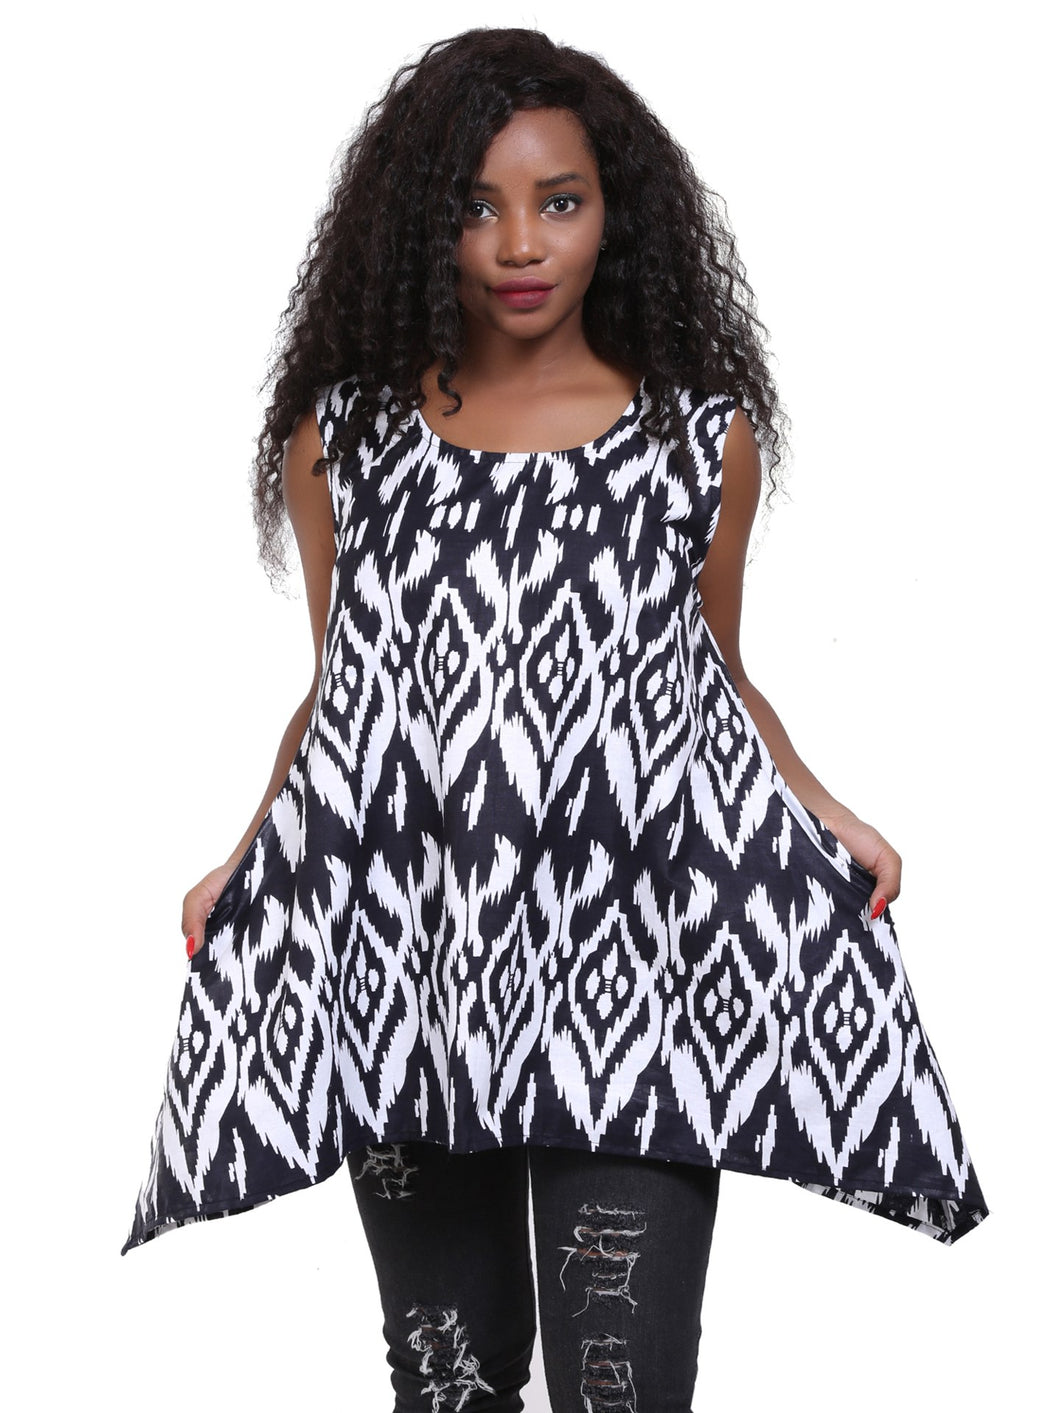 African Print A-Line Sleeveless Blouse 2164-419